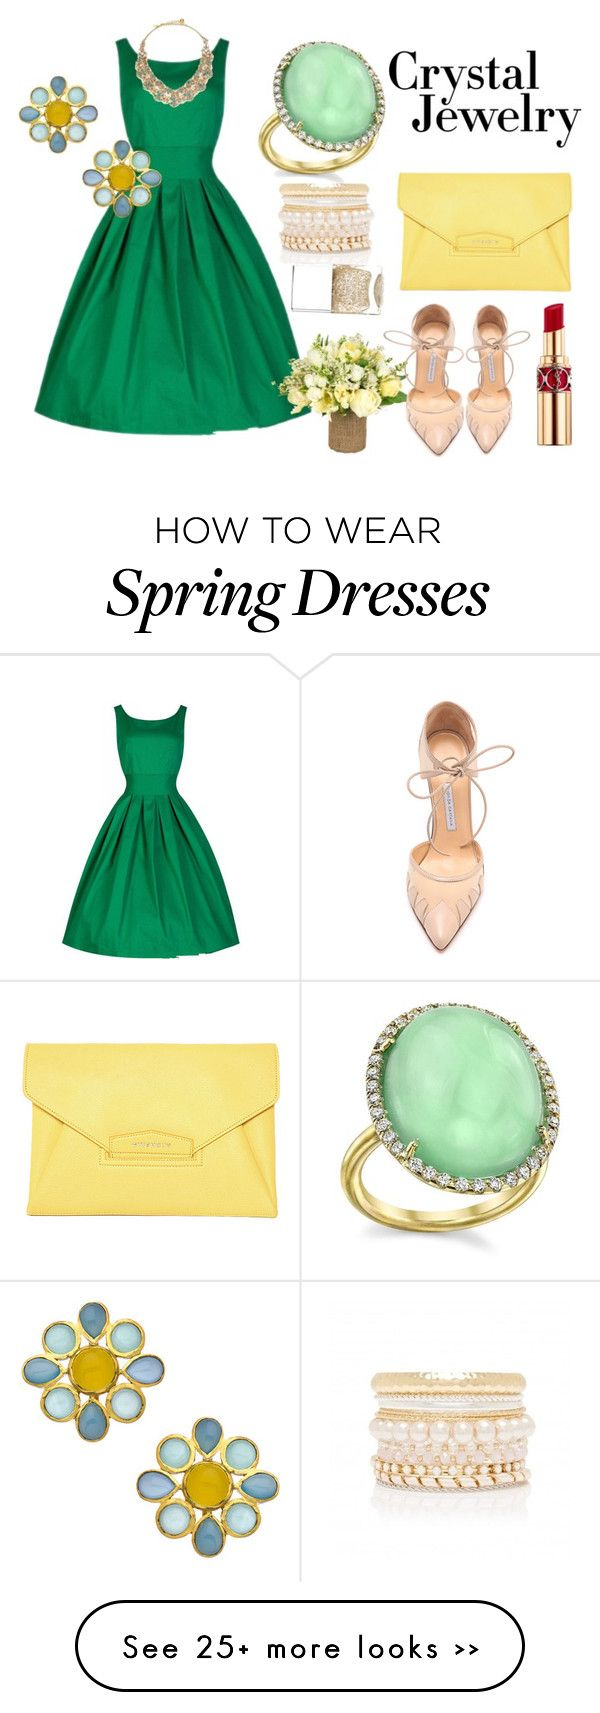 """Crystal Jewelry"" by eloisecheng on Polyvore featuring Irene Neuwirth, Kate Spade, Kanupriya, Jayson Home, Forever New, Bionda Castana, Givenchy, Yves Saint Laurent and Nails Inc."